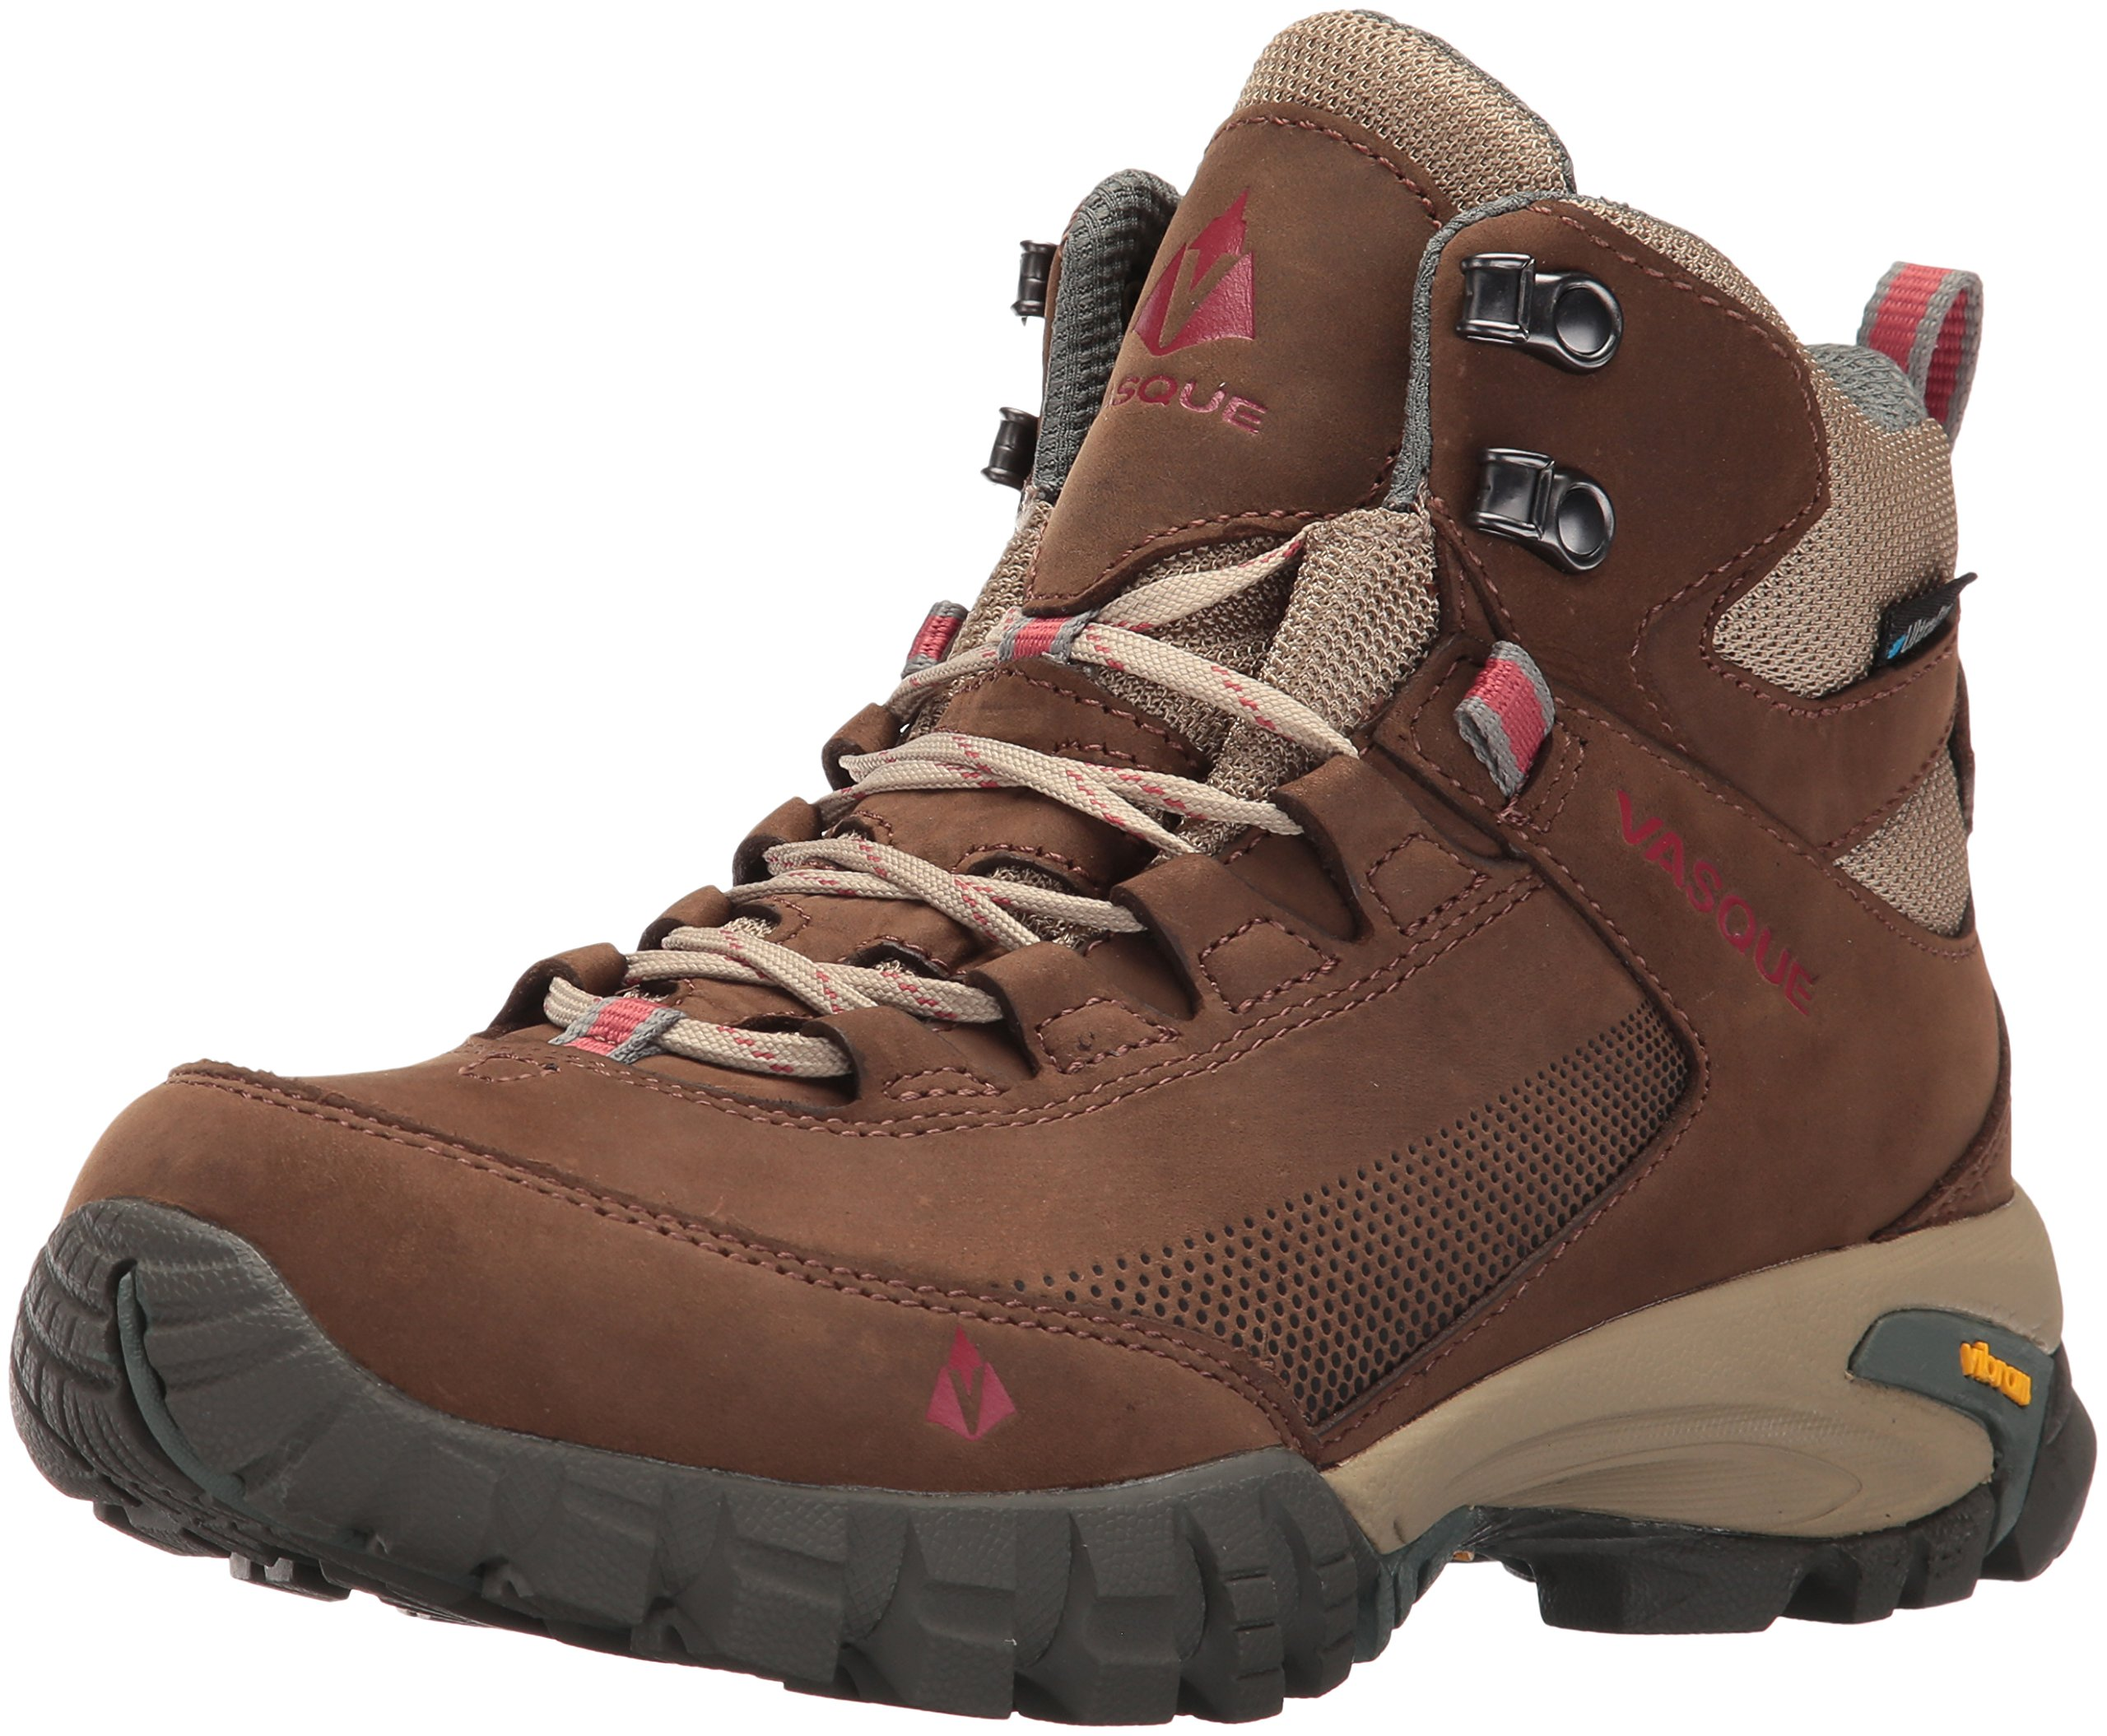 Vasque Women's Talus Trek UltraDry-W Hiking Boot, Slate Brown/Balsam Green, 9 M US by Vasque